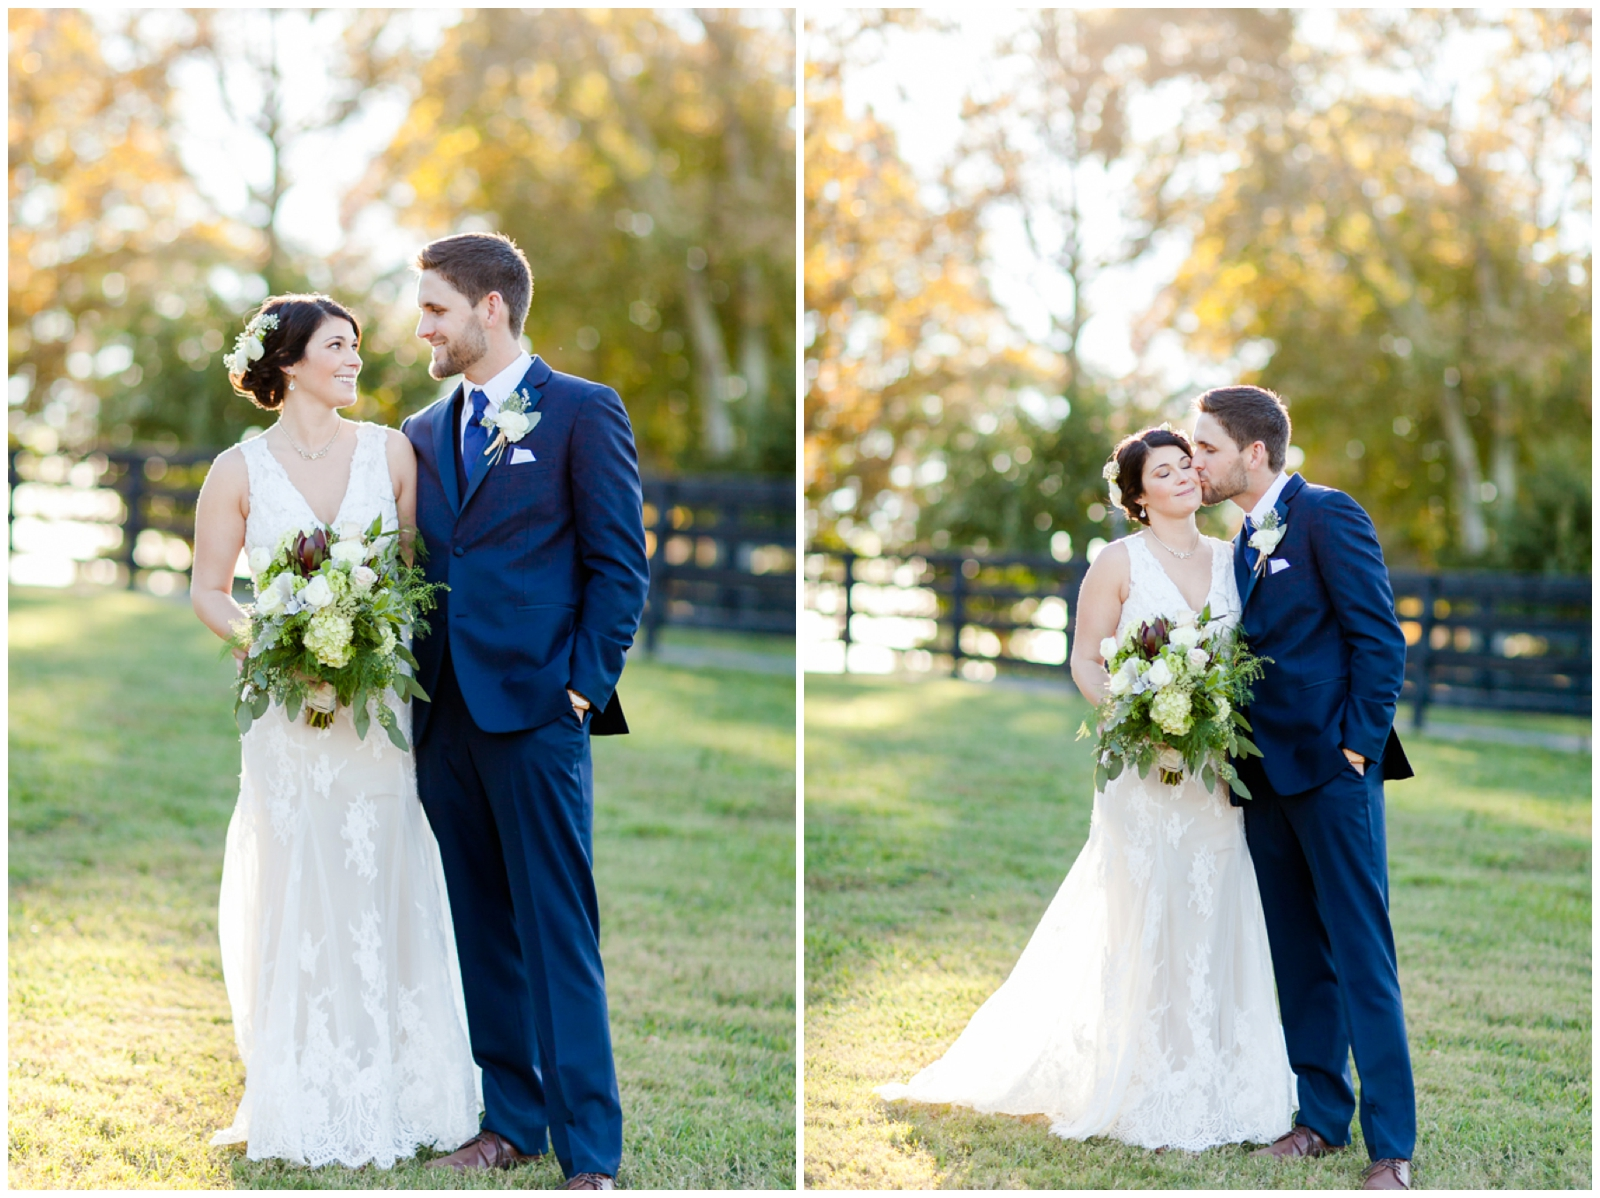 R&G_AtlantaWeddingPhotographer_WhiteOaksBarn_0022